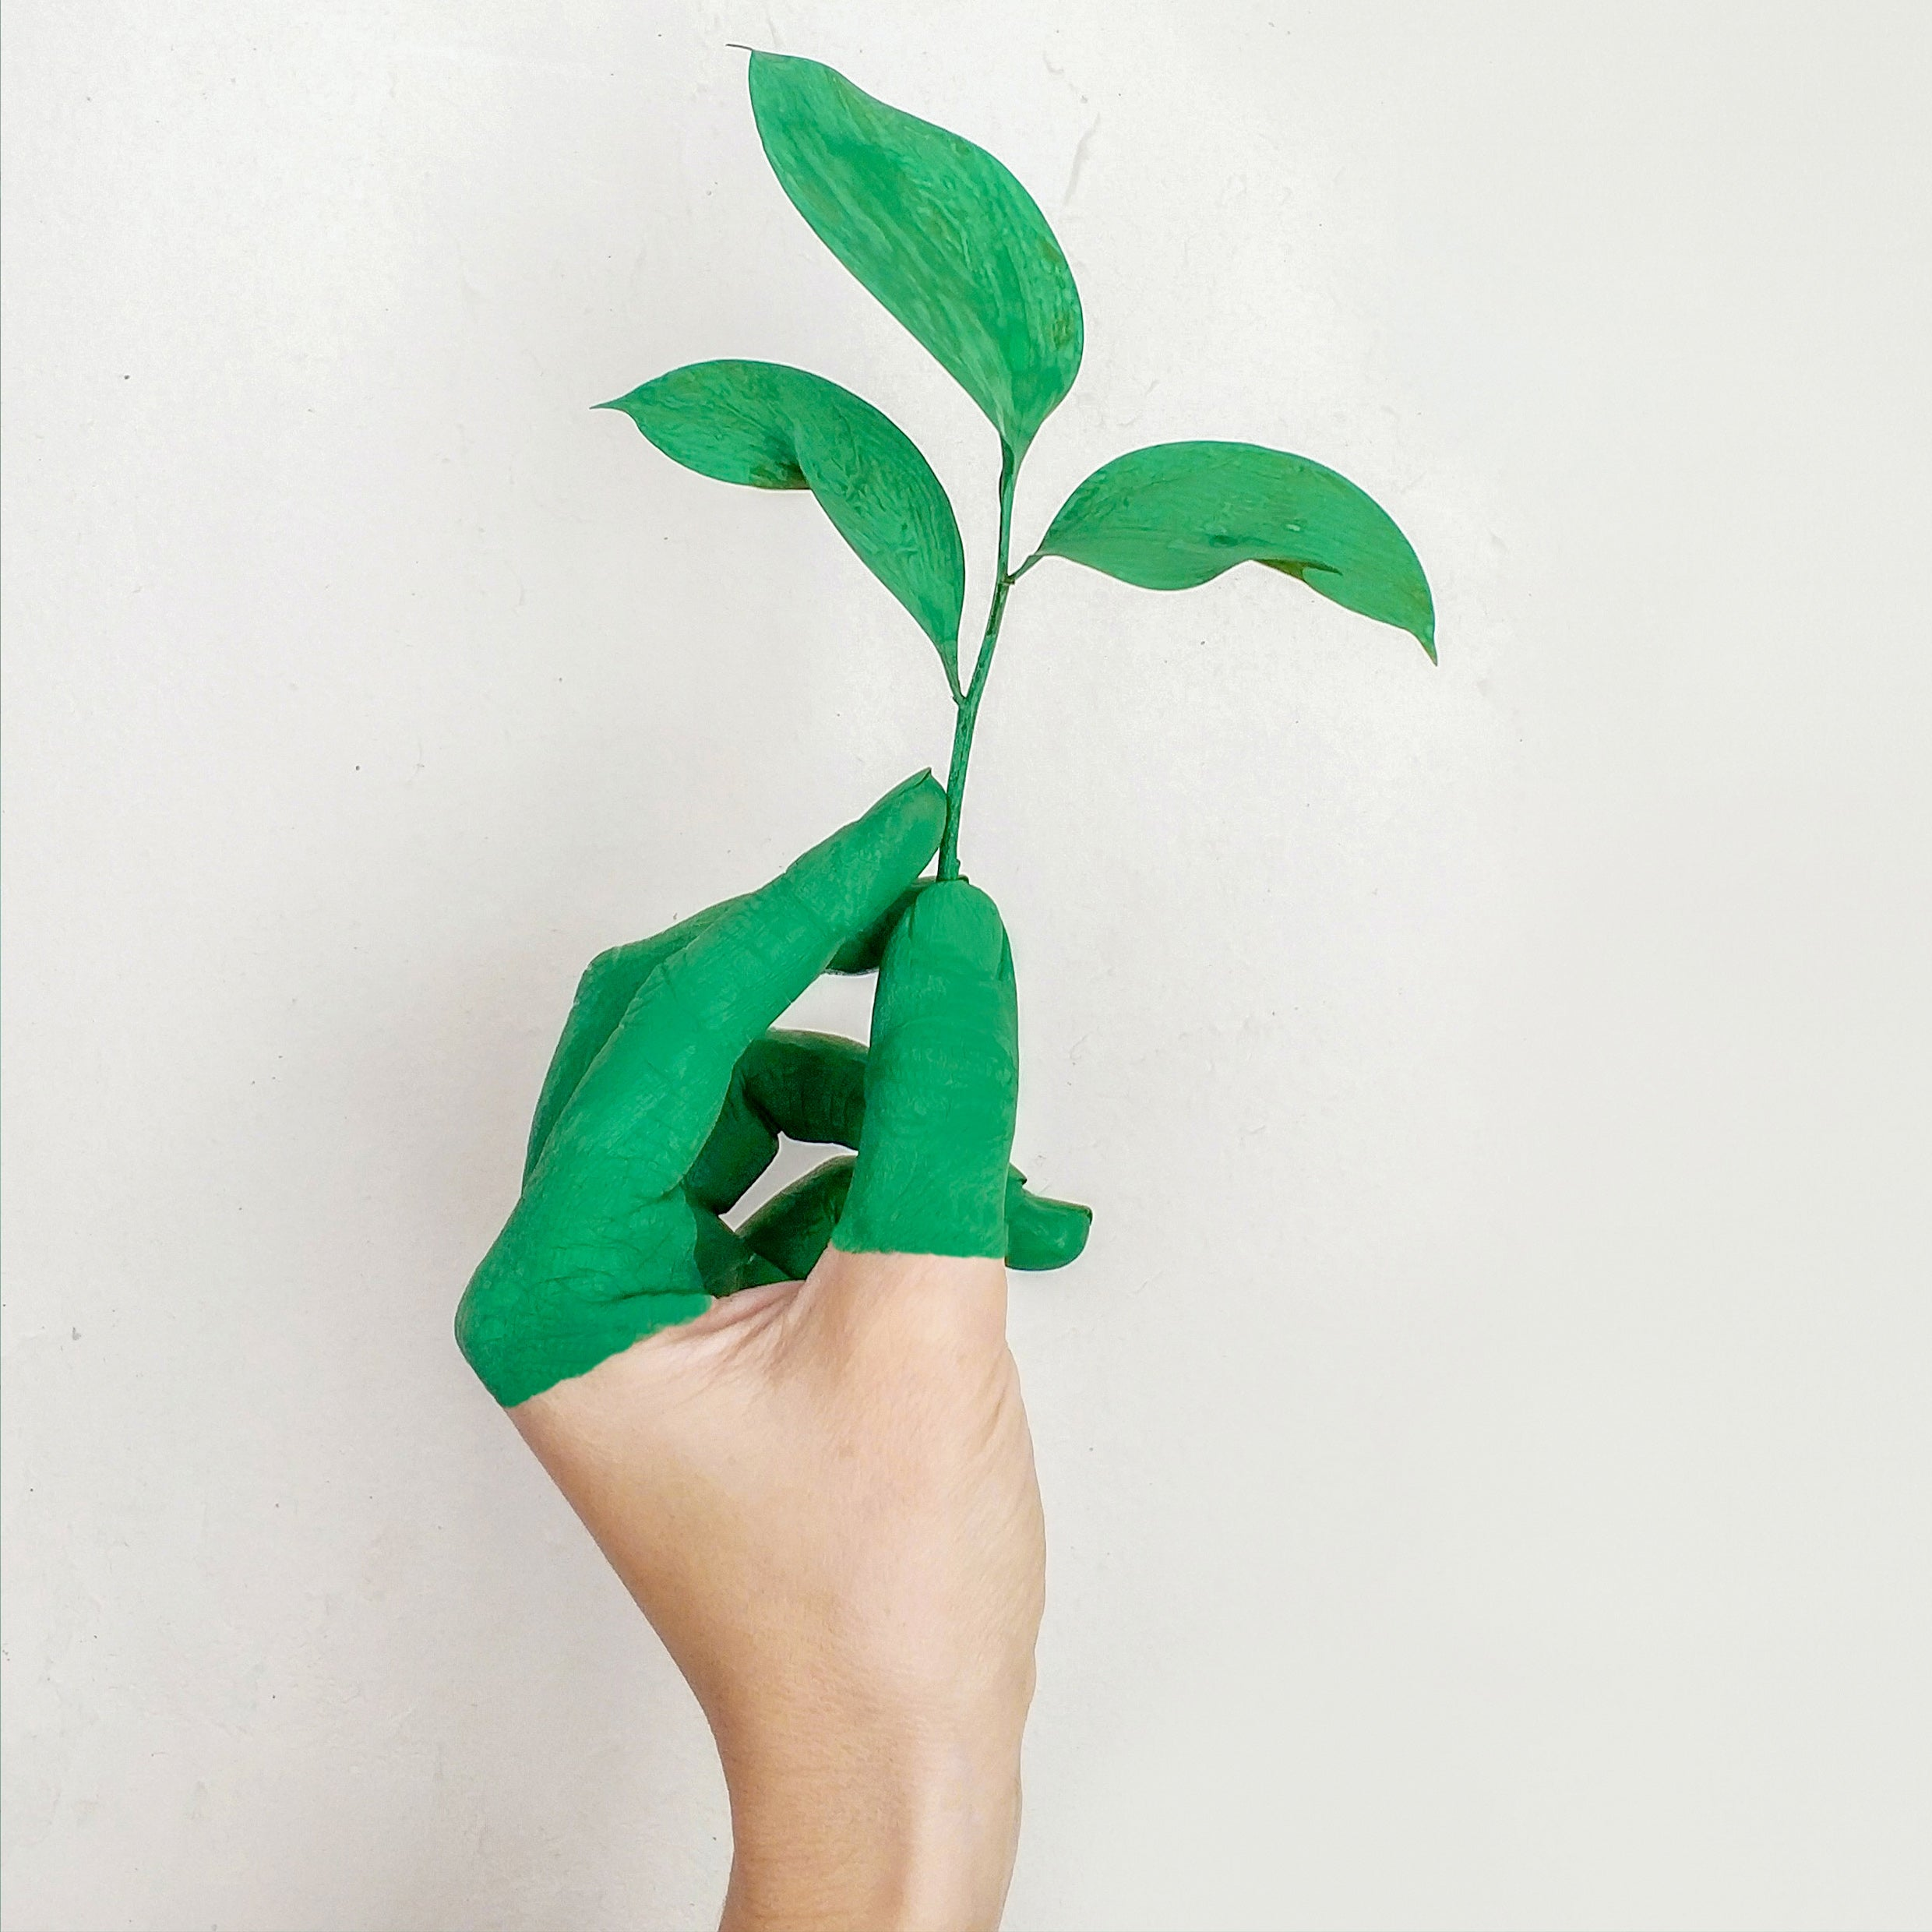 green painted hand holding plant seedling